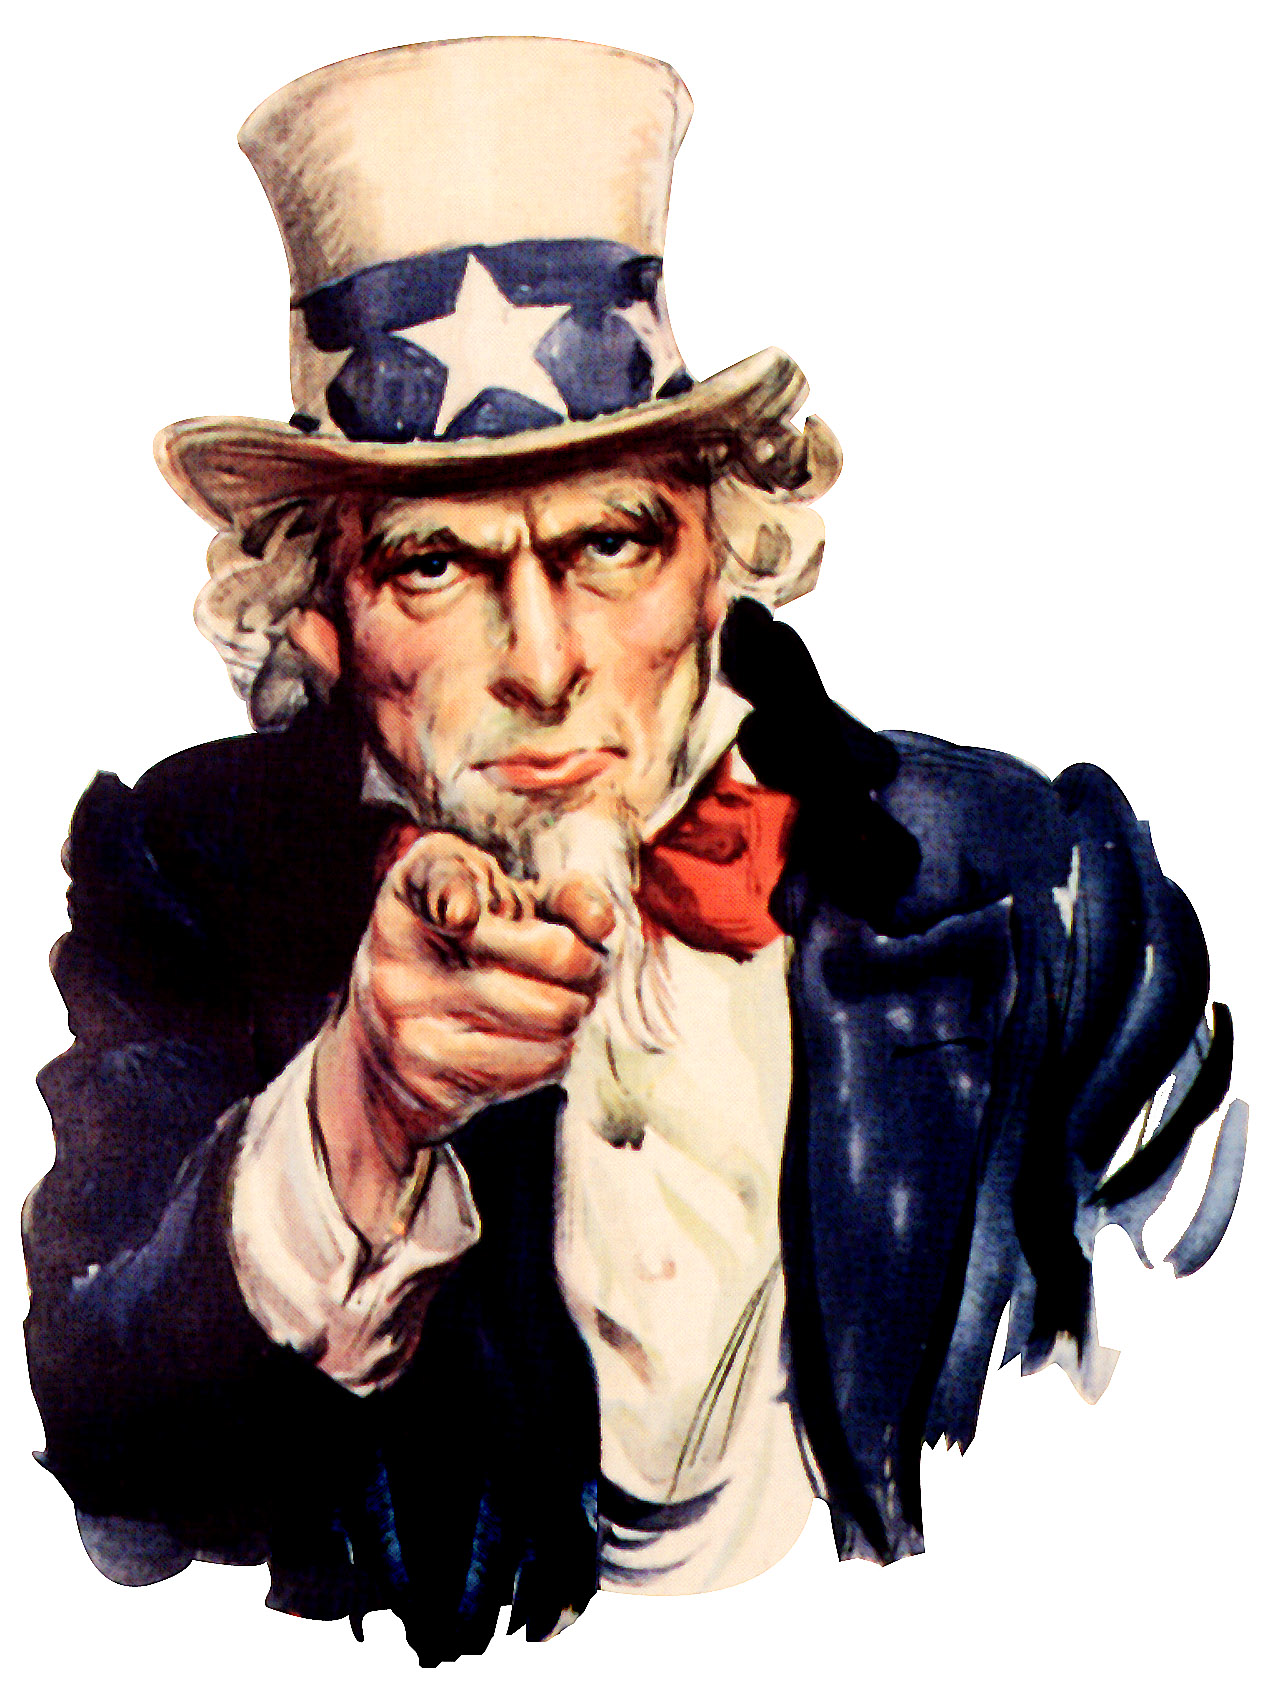 IMAGE(http://upload.wikimedia.org/wikipedia/commons/f/f3/Uncle_Sam_%28pointing_finger%29.jpg)